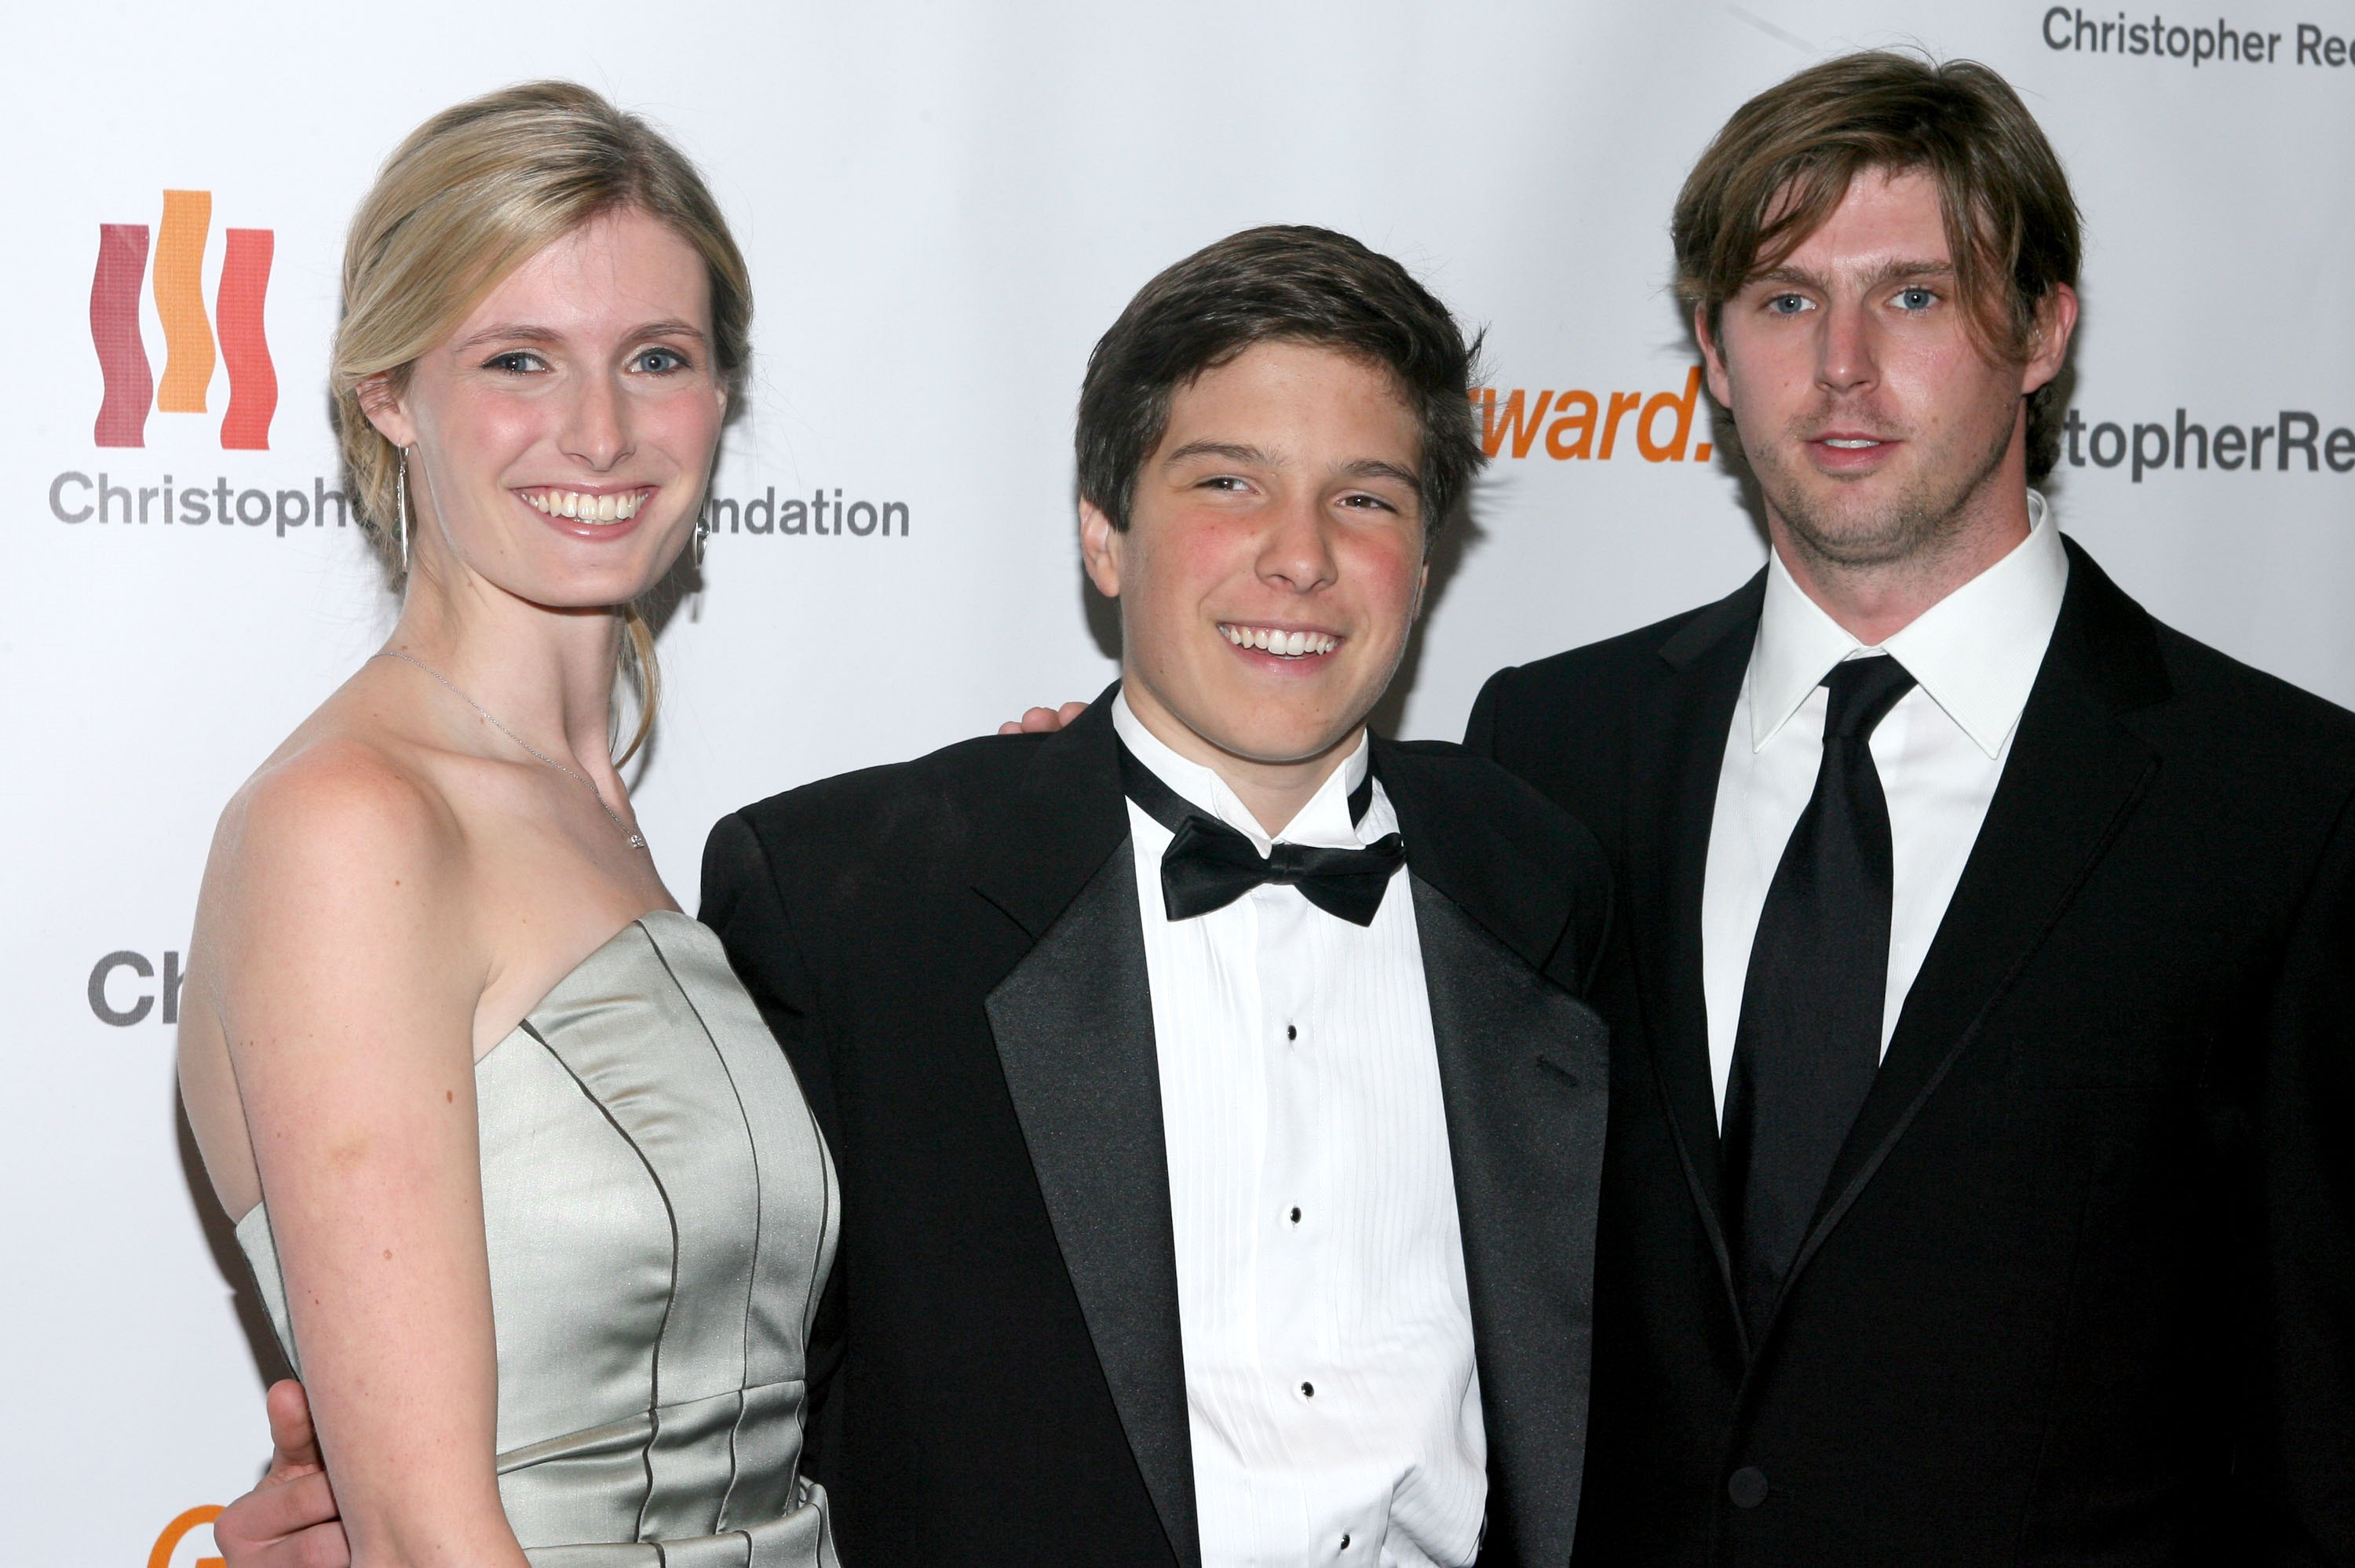 Alexandra Reeve, Will Reeve, and Matthew Reeve arrive for the Christopher Reeve Foundation Annual Gala at the Marriott Marquee November 6, 2006, in New York City. (Getty)